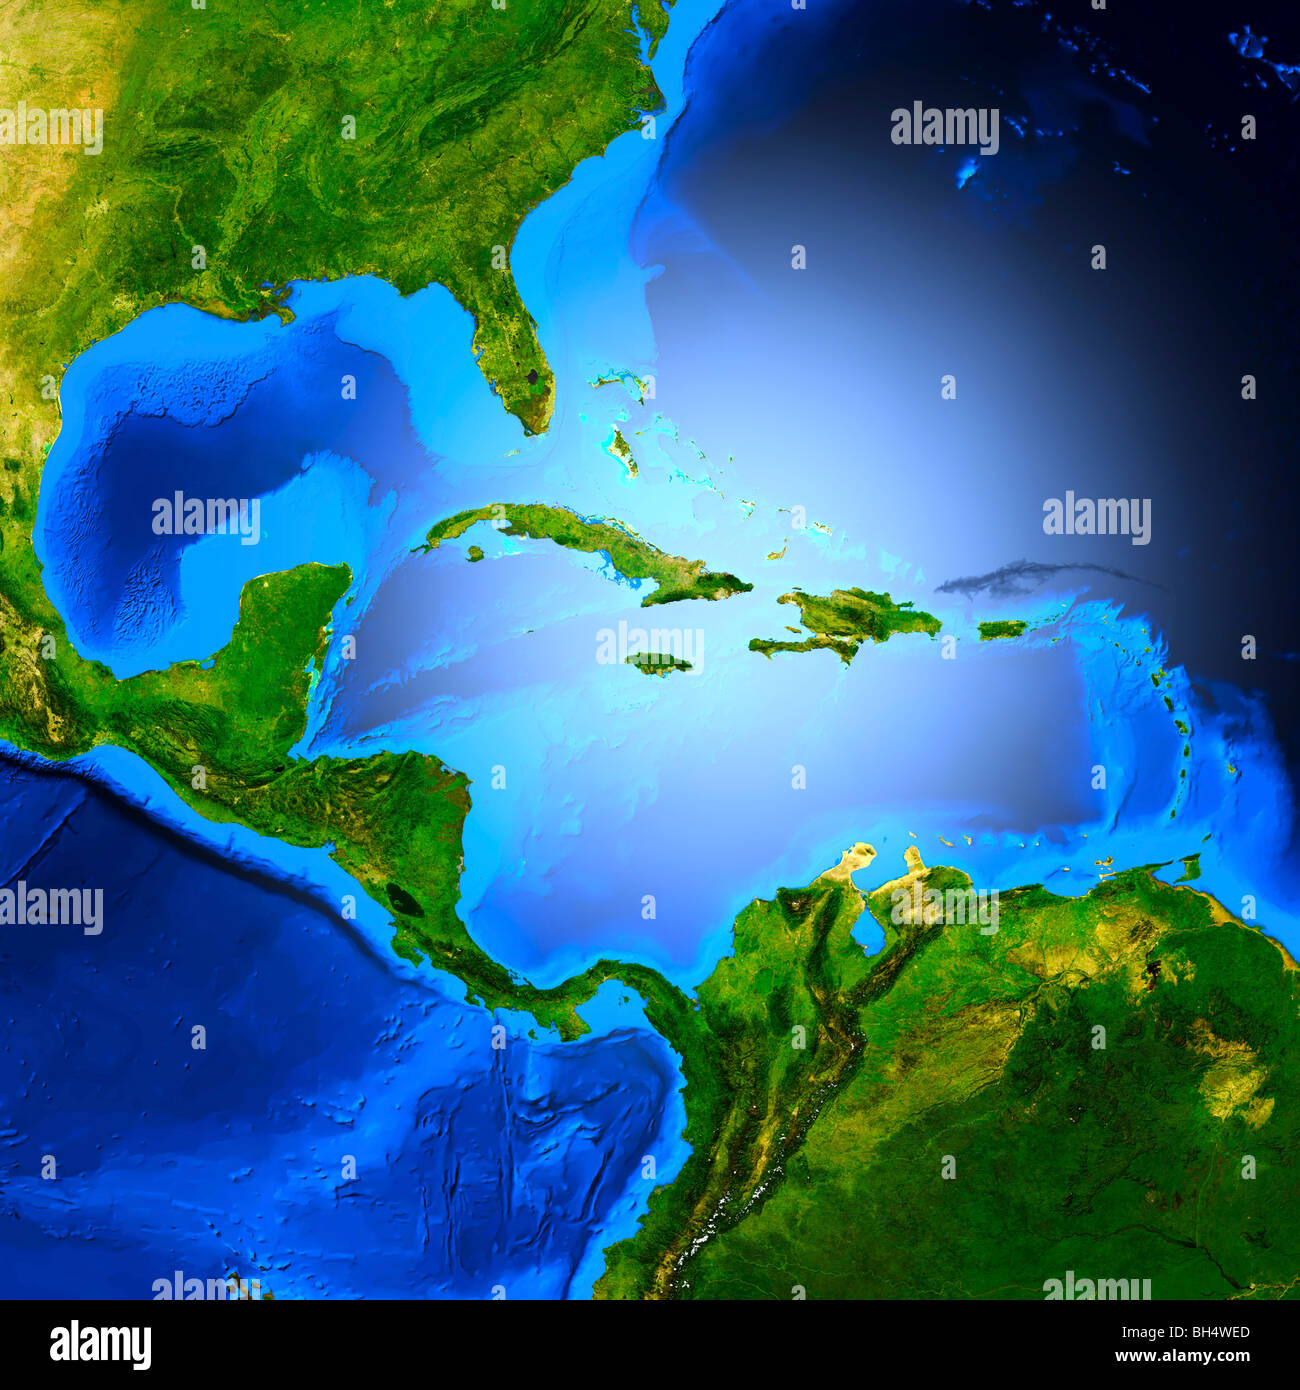 map of central america showing the caribbean sea the gulf of mexico cuba haiti etc